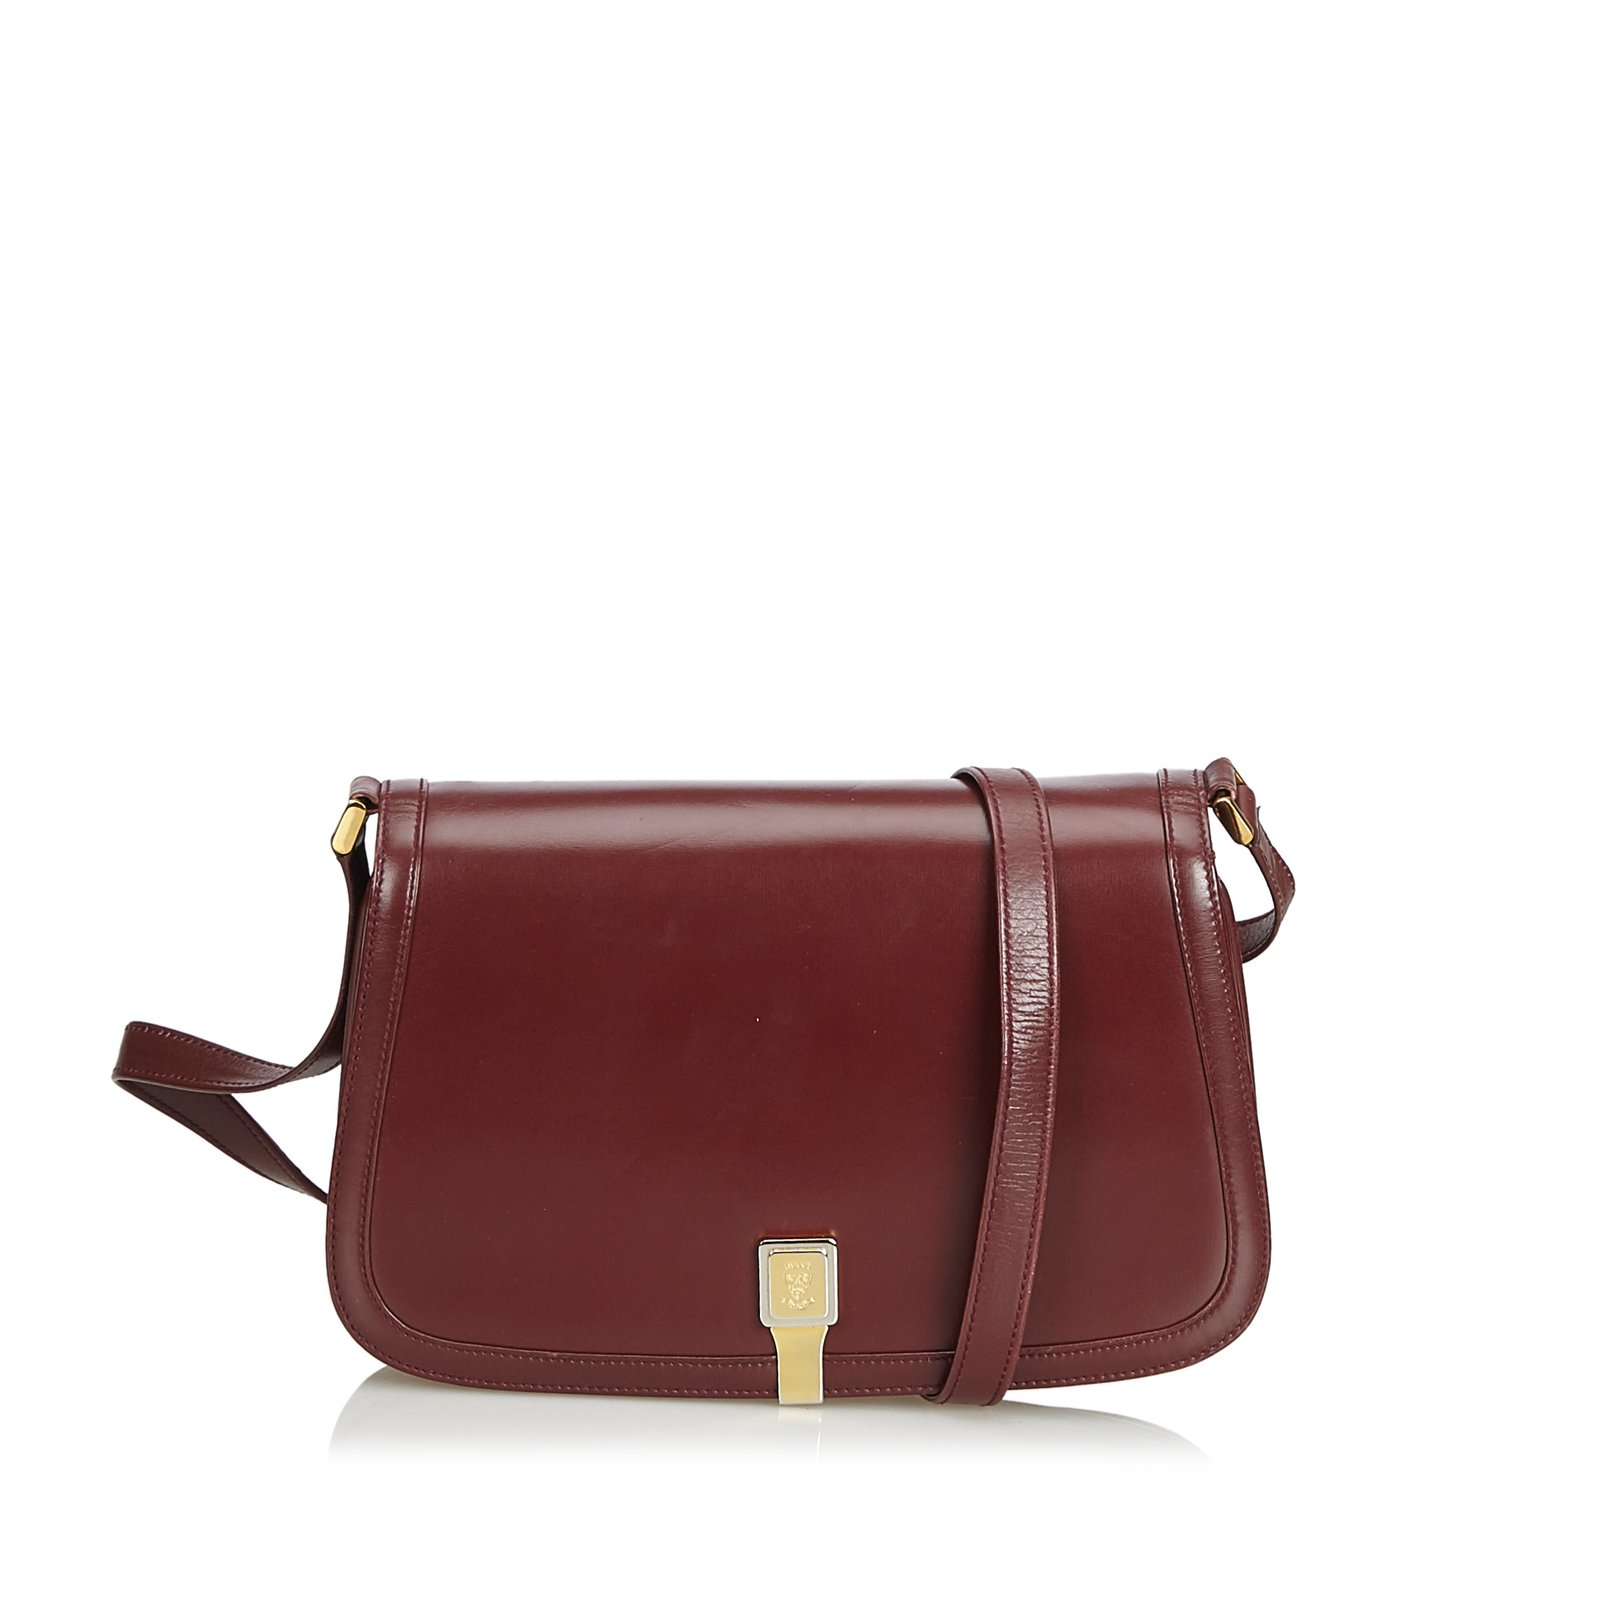 34b8019d563653 Gucci Old Gucci Leather Shoulder Bag Handbags Leather,Other Red,Dark red  ref.